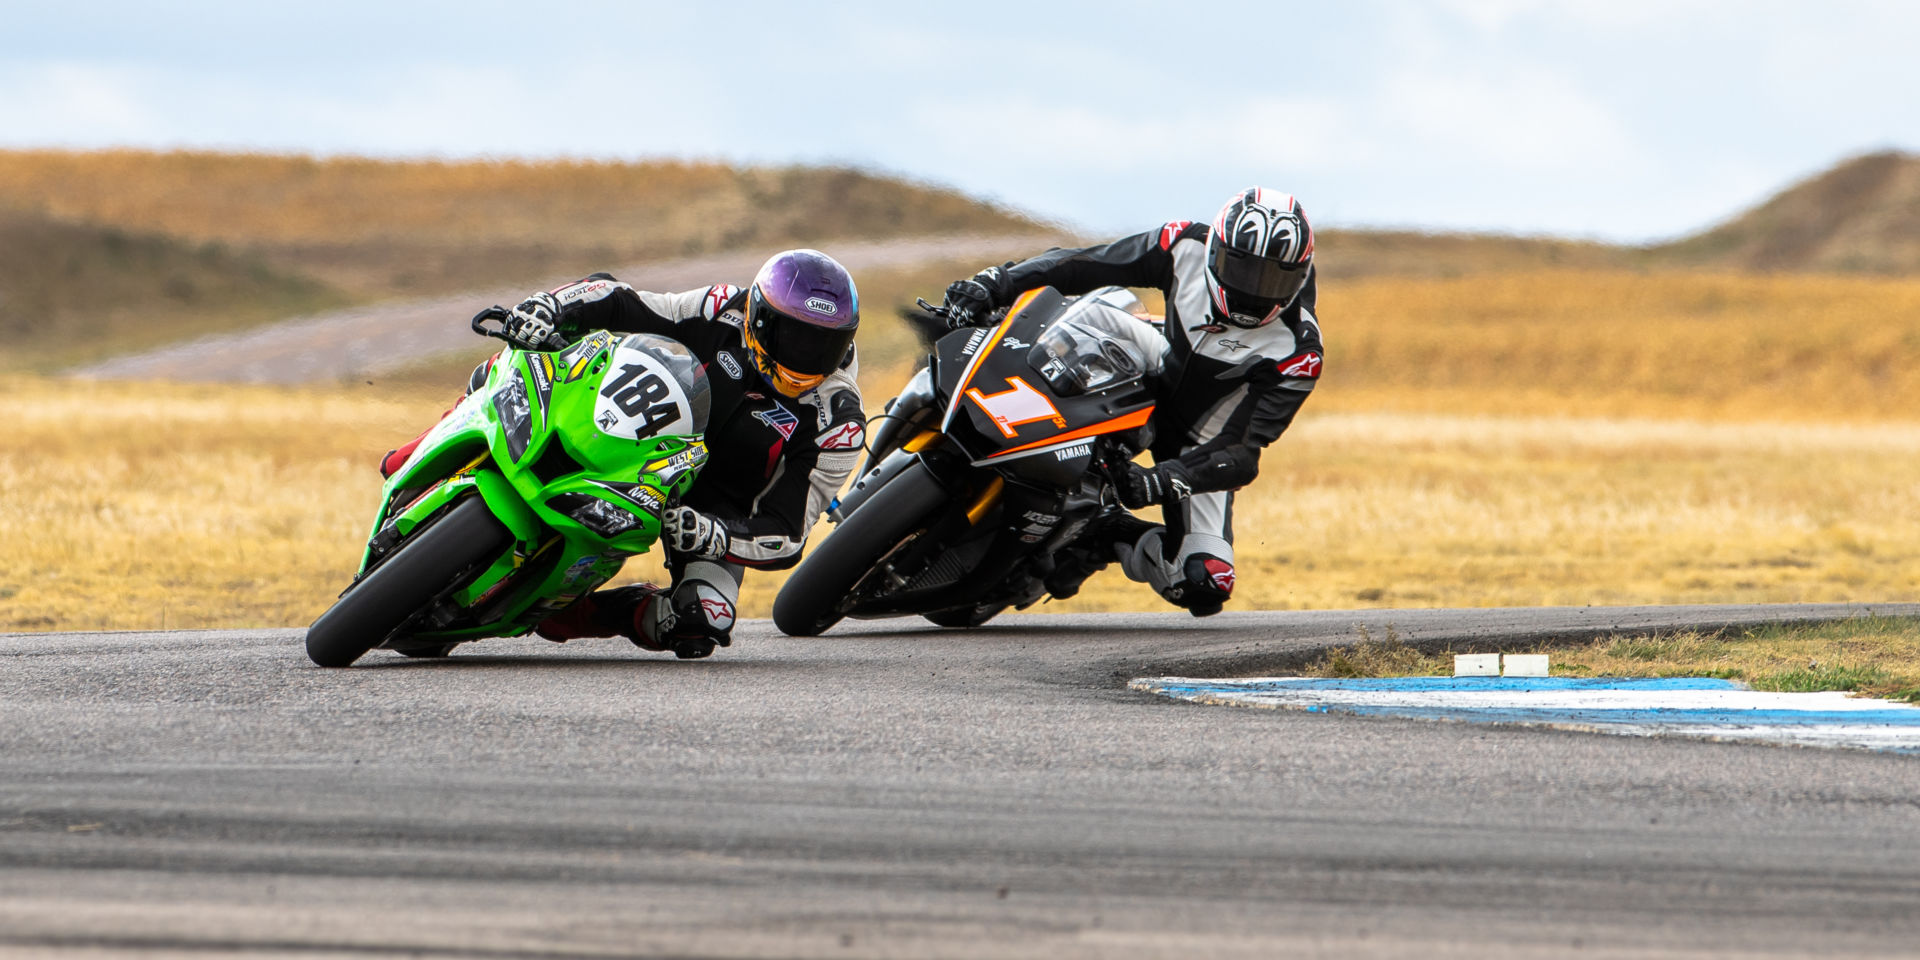 Andrew Lee (184) leading Ryan Burke (1) in the Race of the Rockies at High Plains Raceway. Photo by Luke Hummel Photography, courtesy MRA.